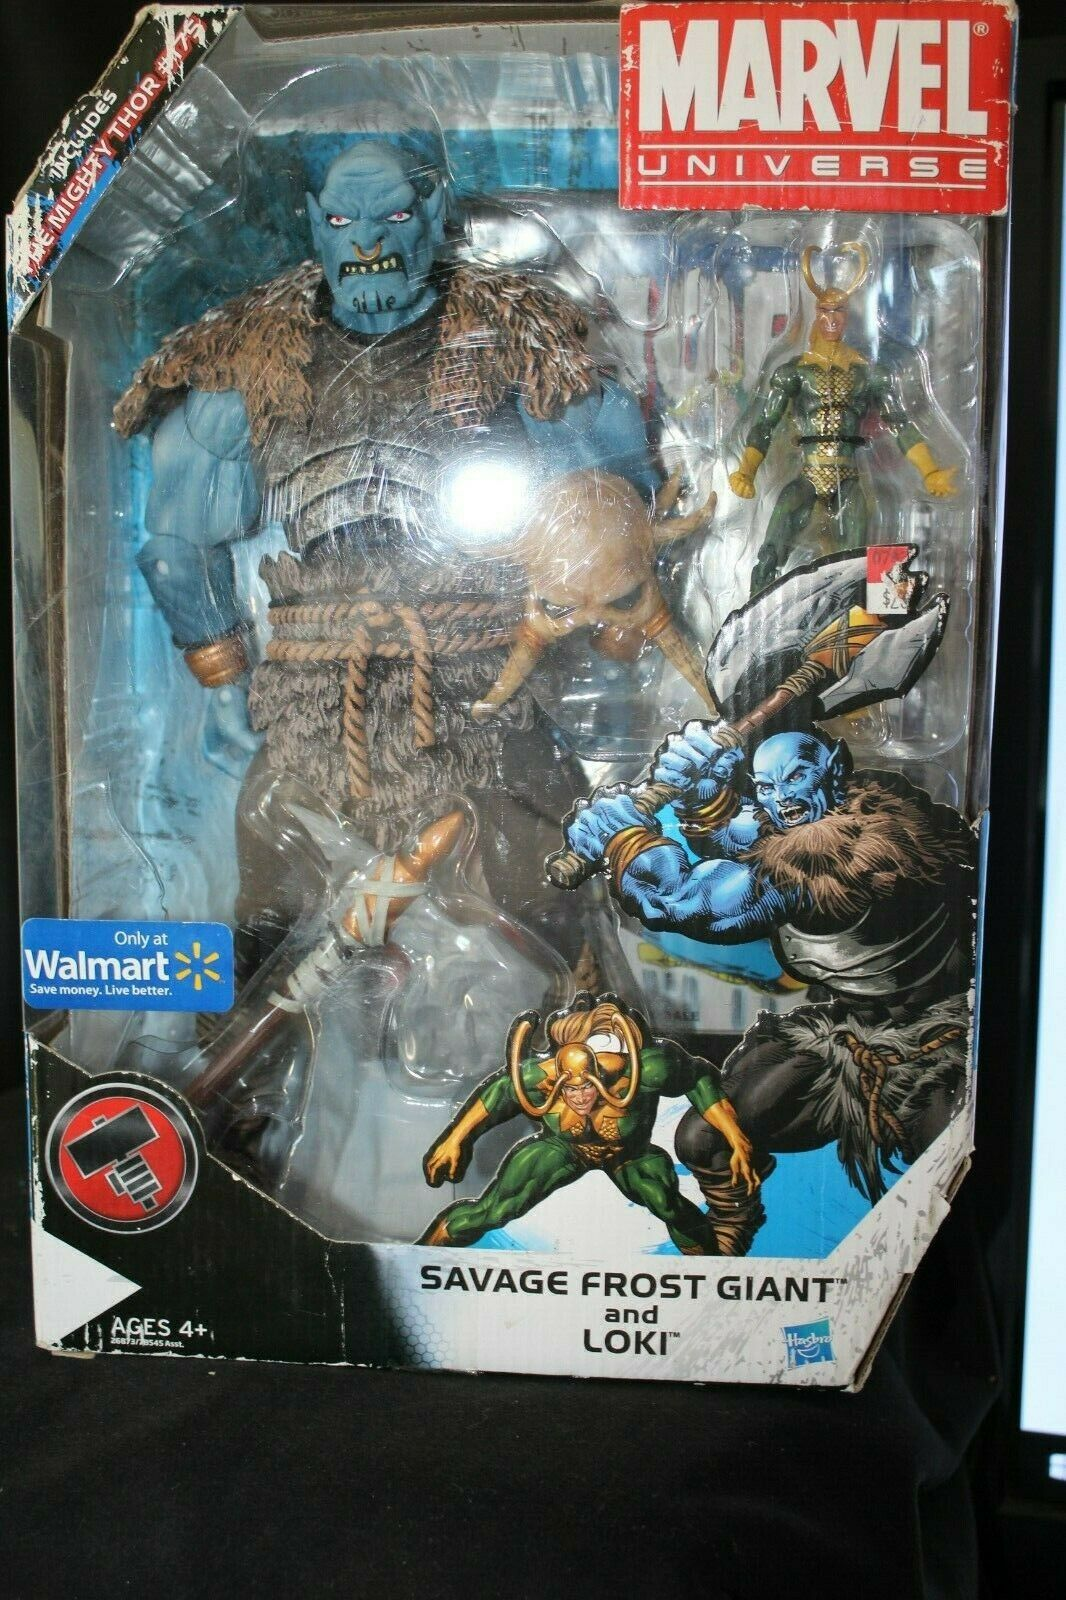 Marvel Universe Savage Frost Giant& Loki Exclusive Figure Set  175NEW Box Wear